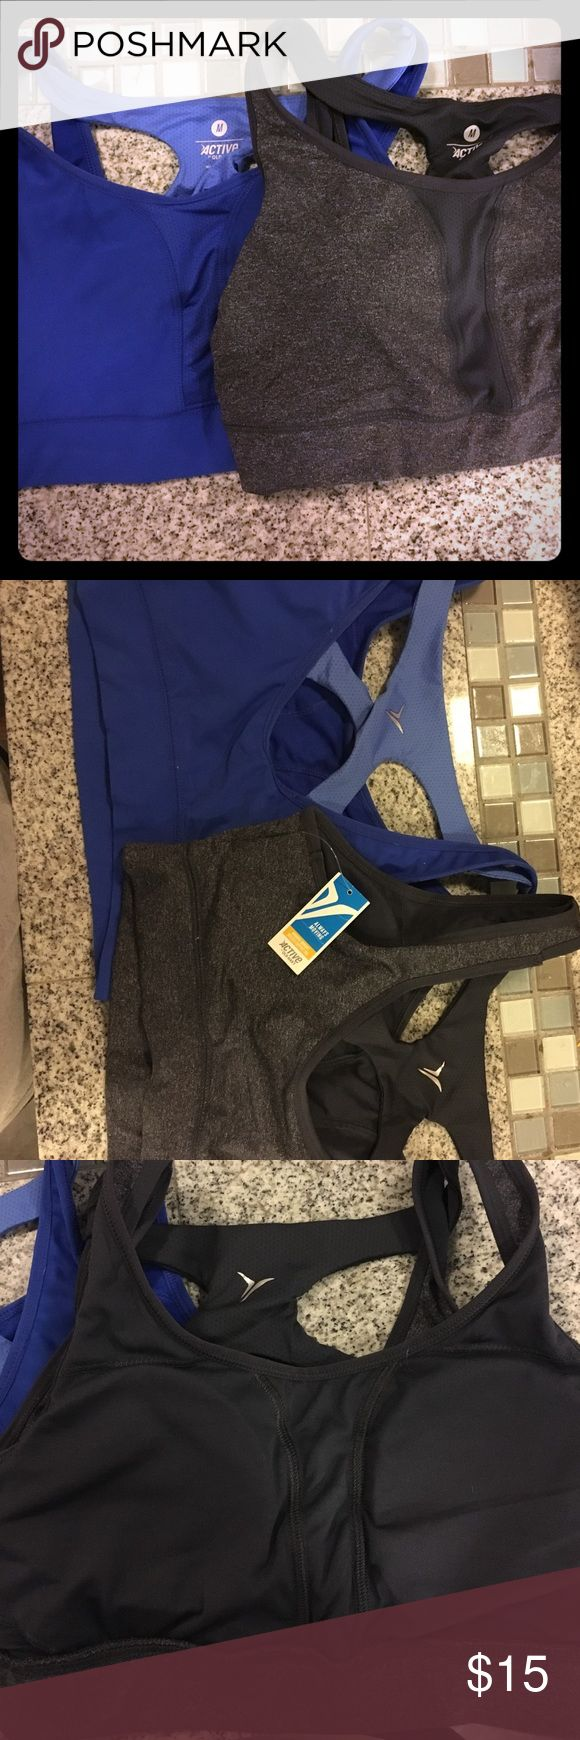 Bundle of sports bras Bundle of old navy sports bras! One dark gray and one dark blue. The gray one still has the tag on it. Both mediums. Old Navy Intimates & Sleepwear Bras